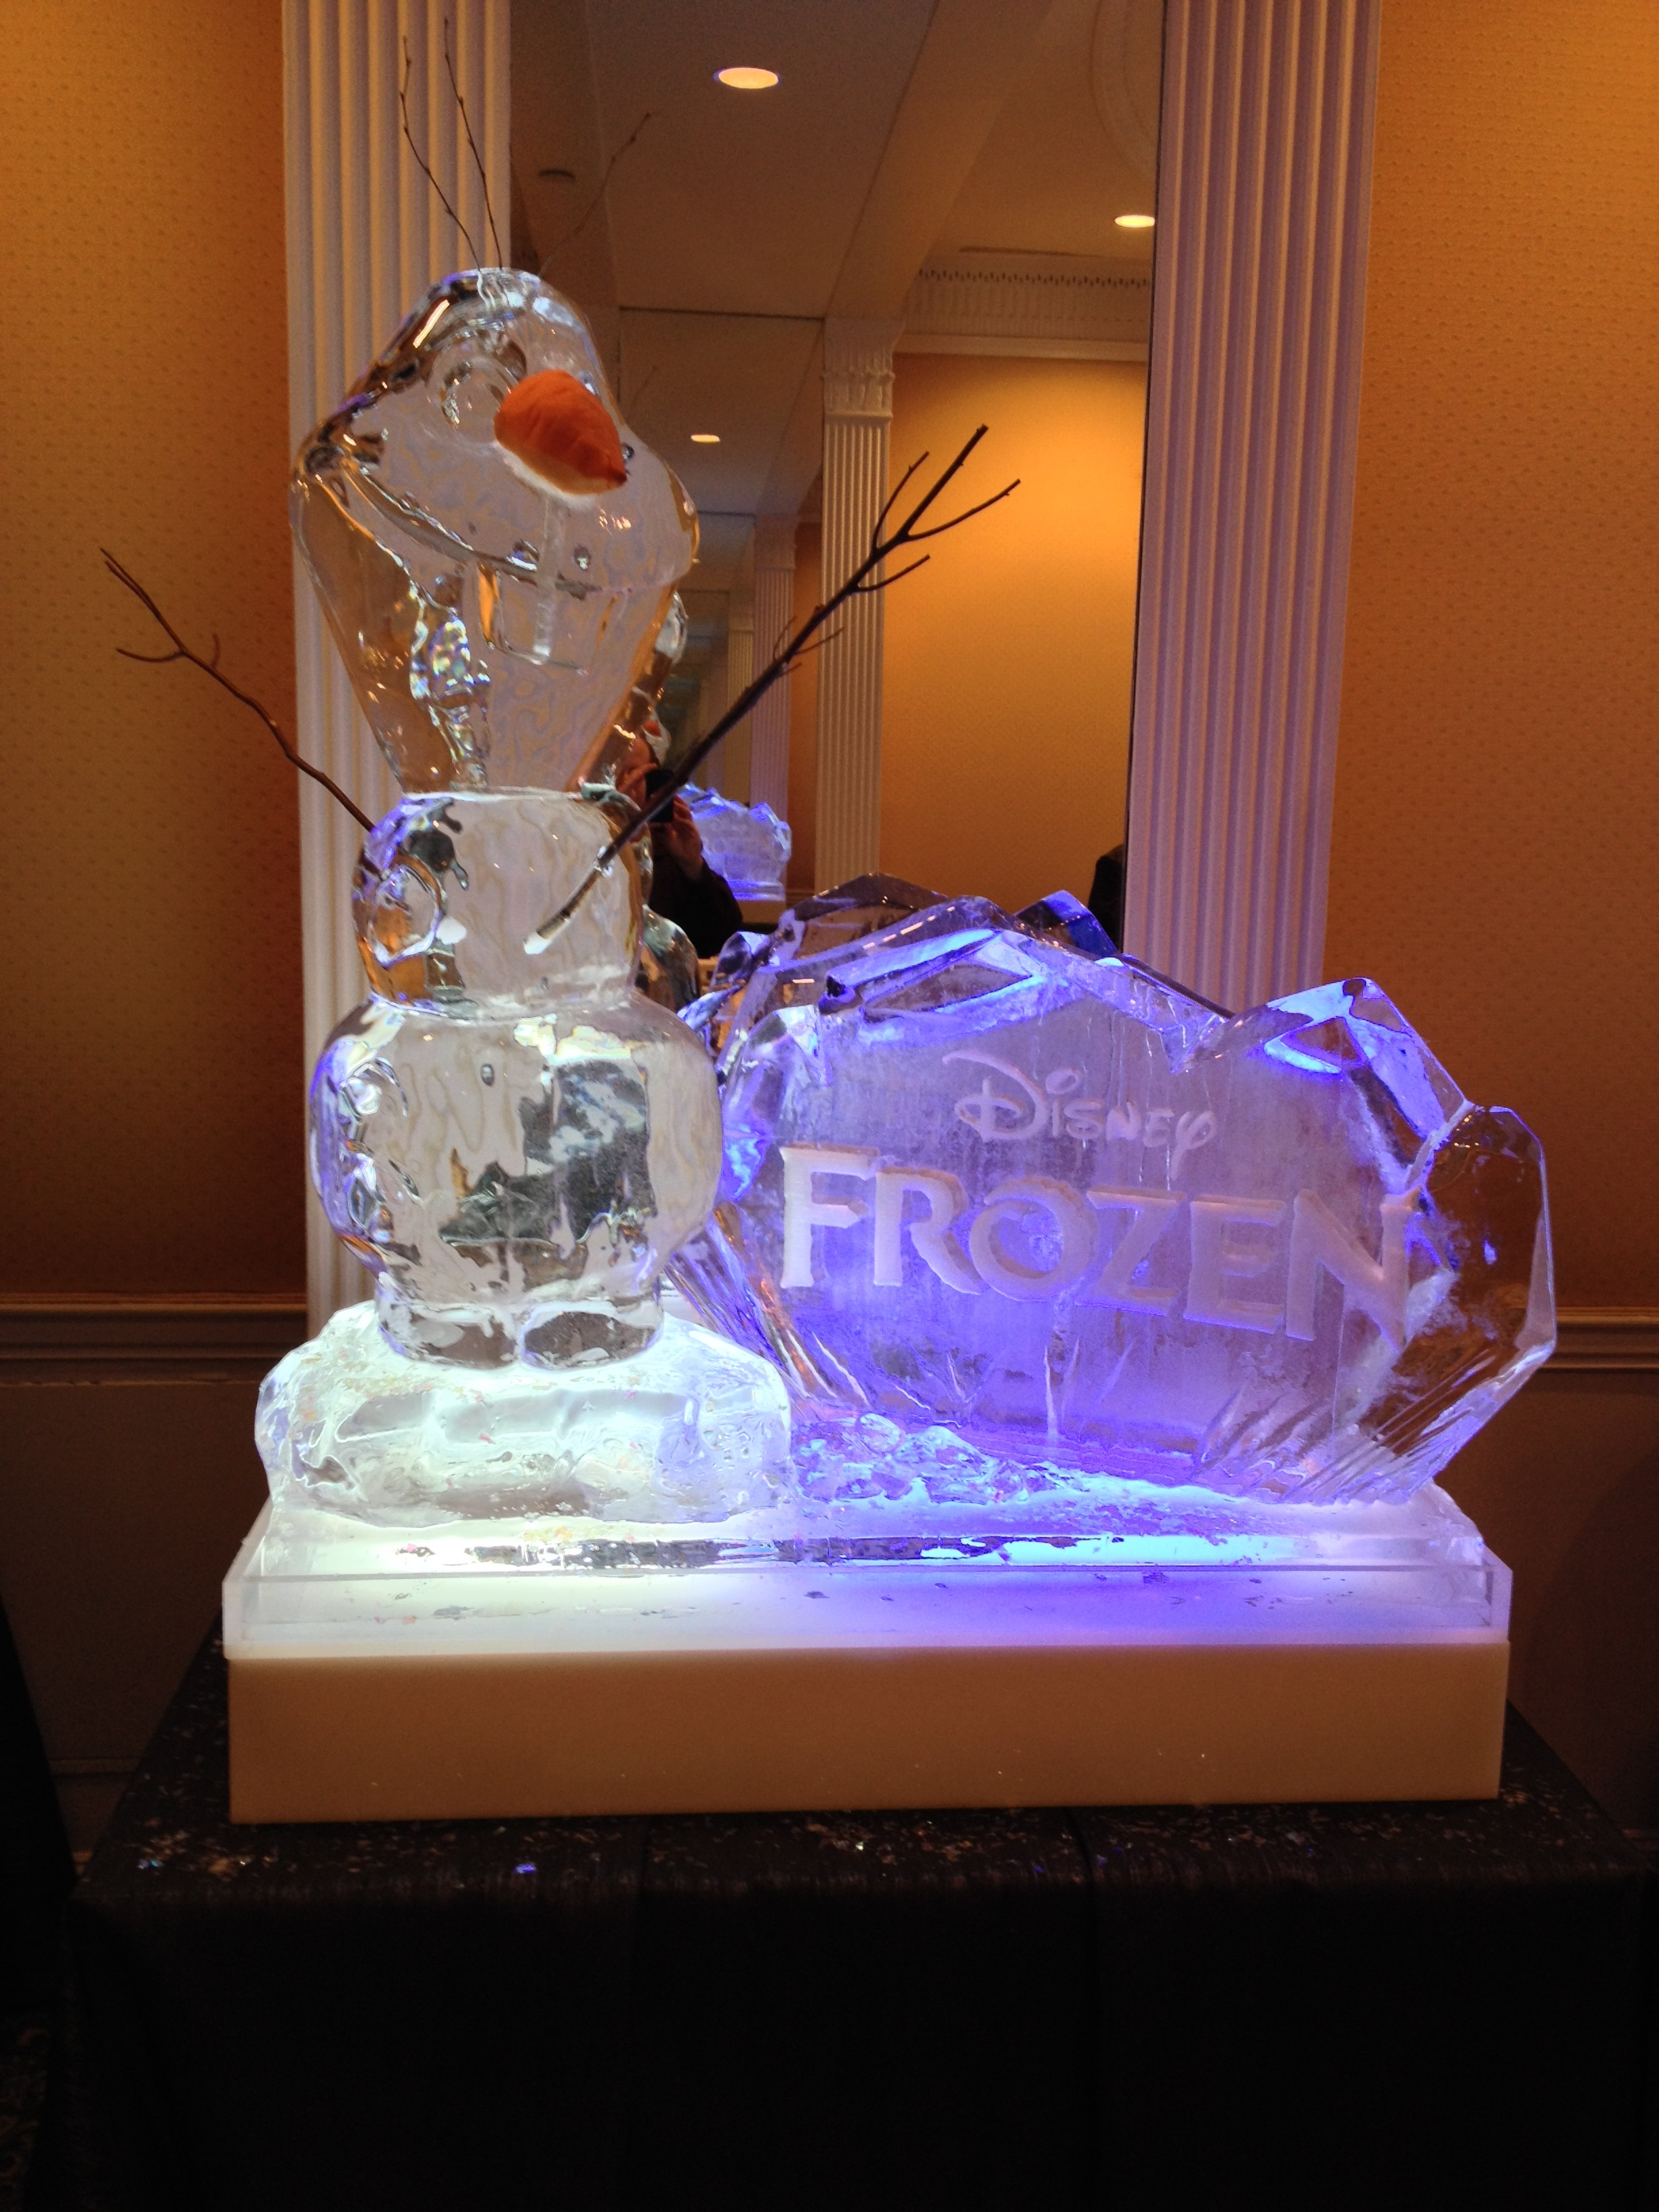 Frozen Ice Sculpture Olaf